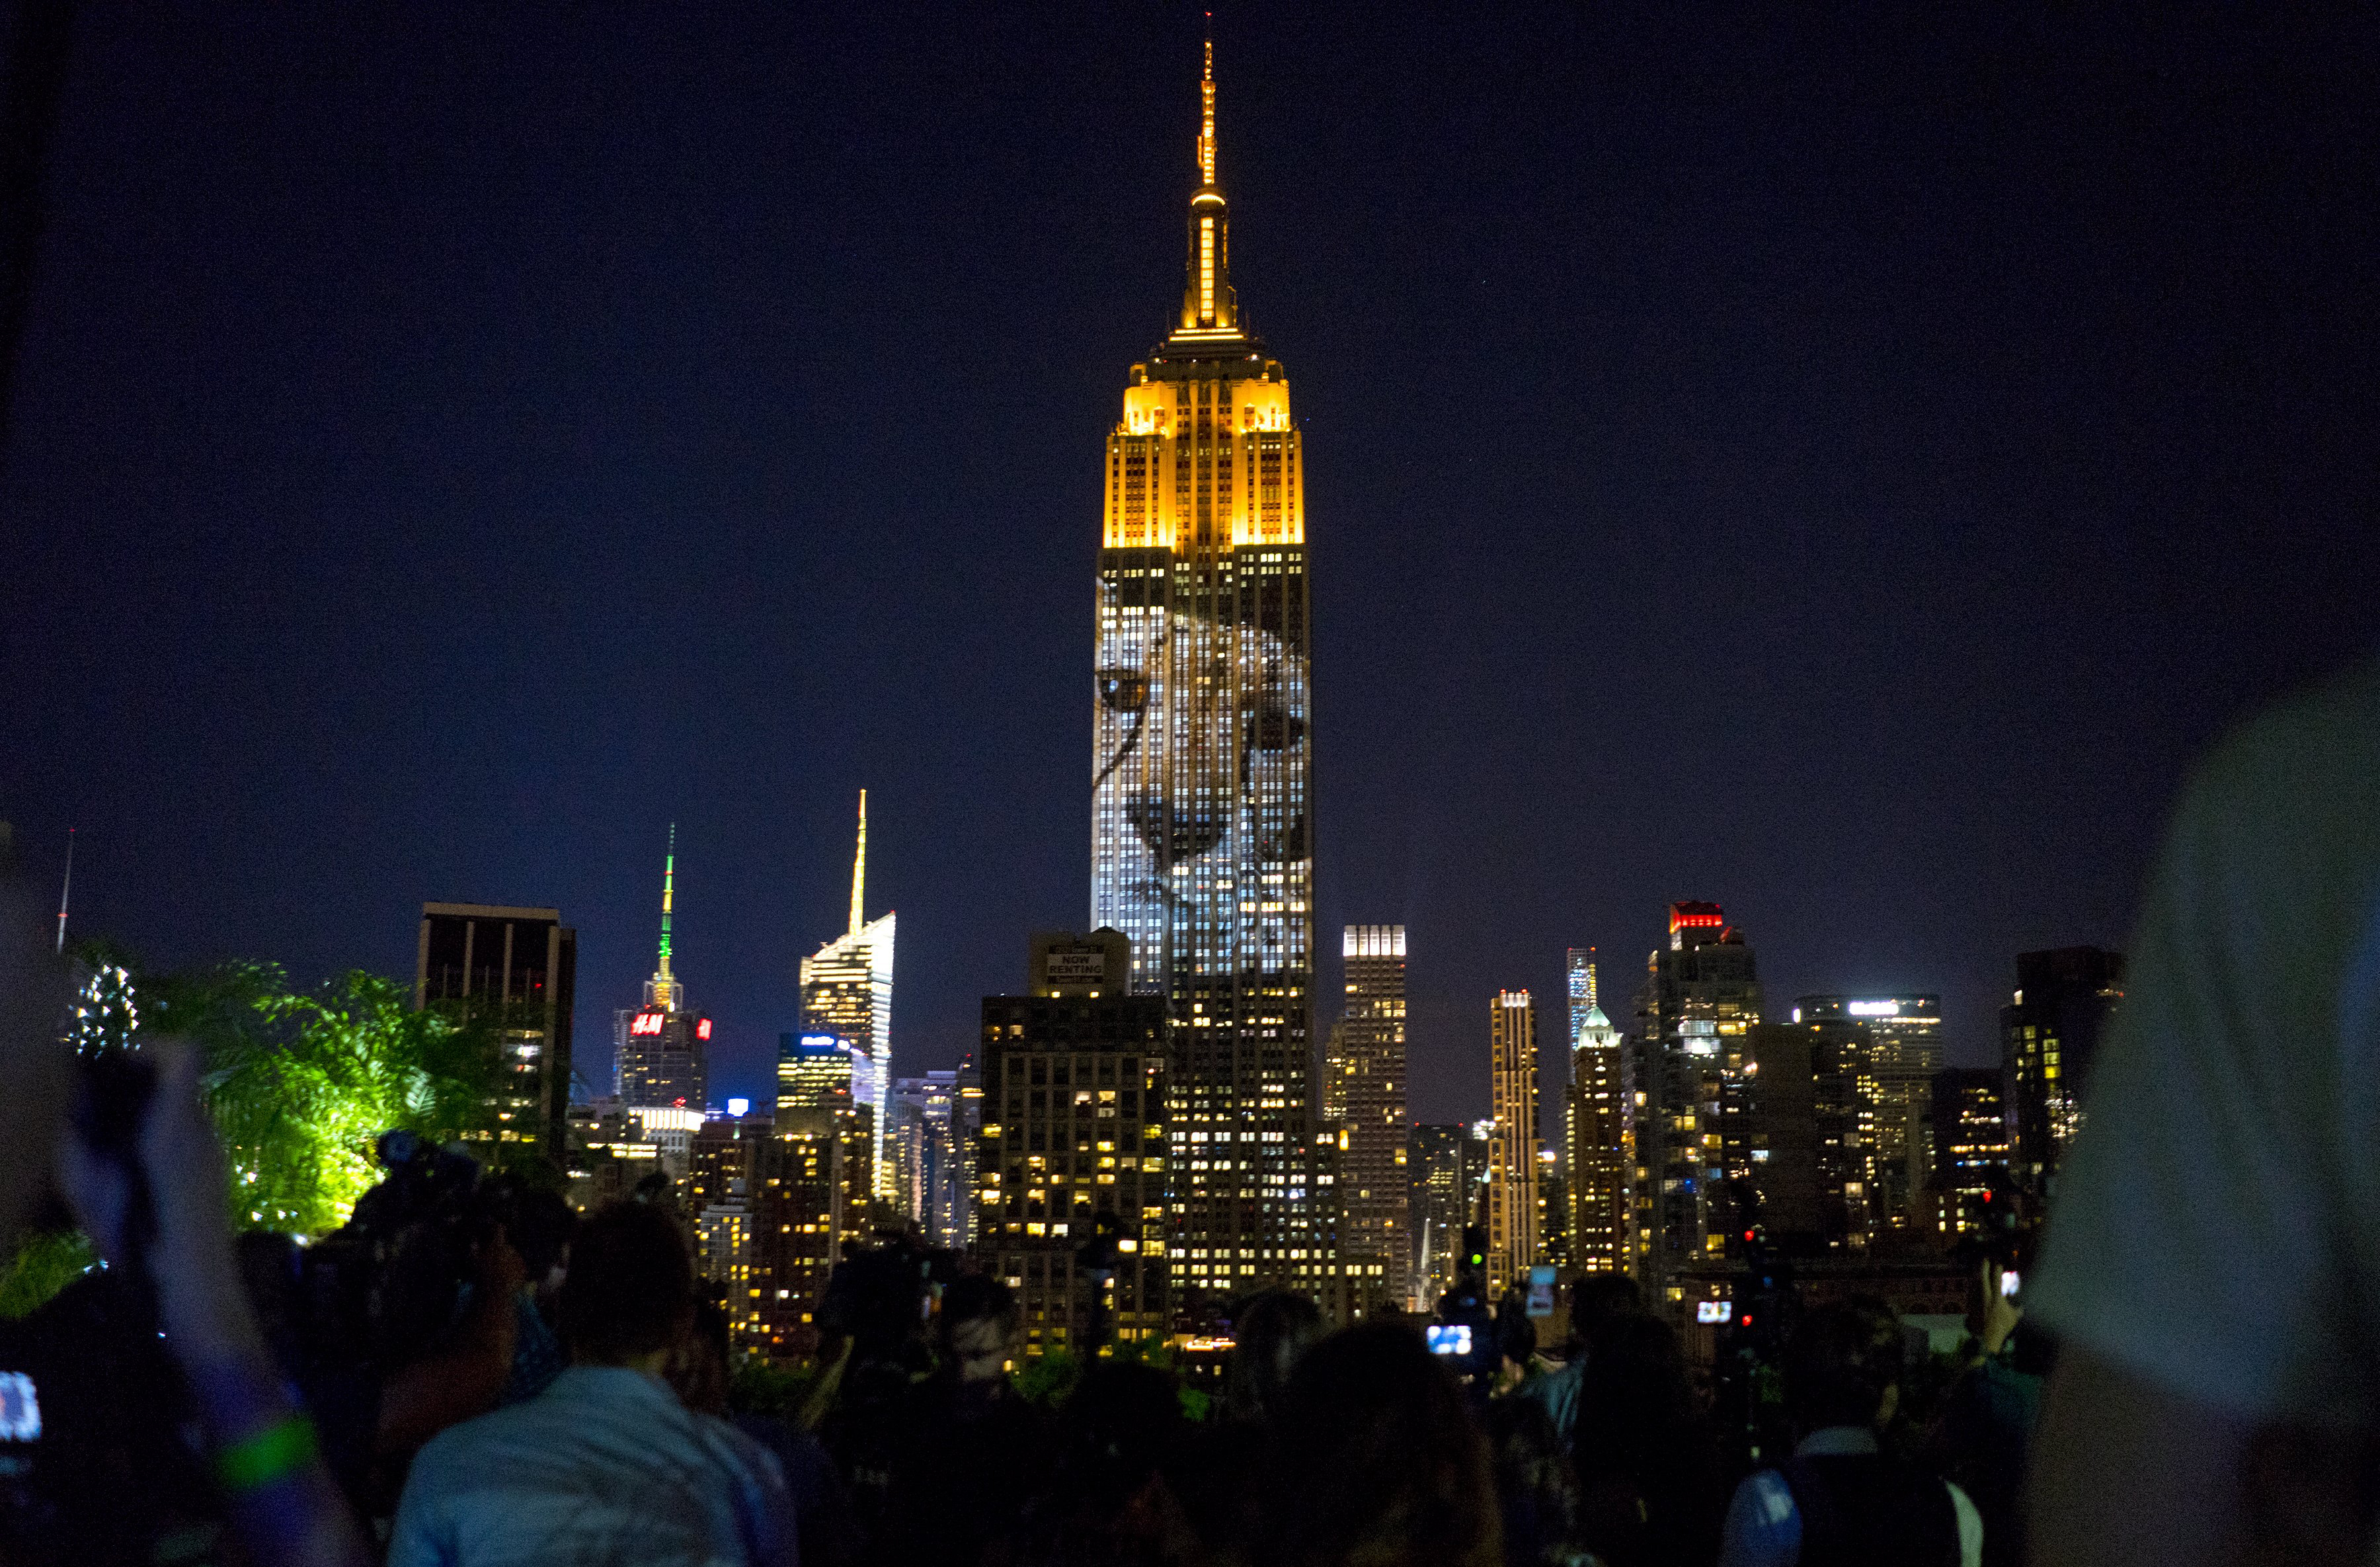 Large images of endangered species are projected on the south facade of The Empire State Building on Aug. 1, 2015, in New York City.